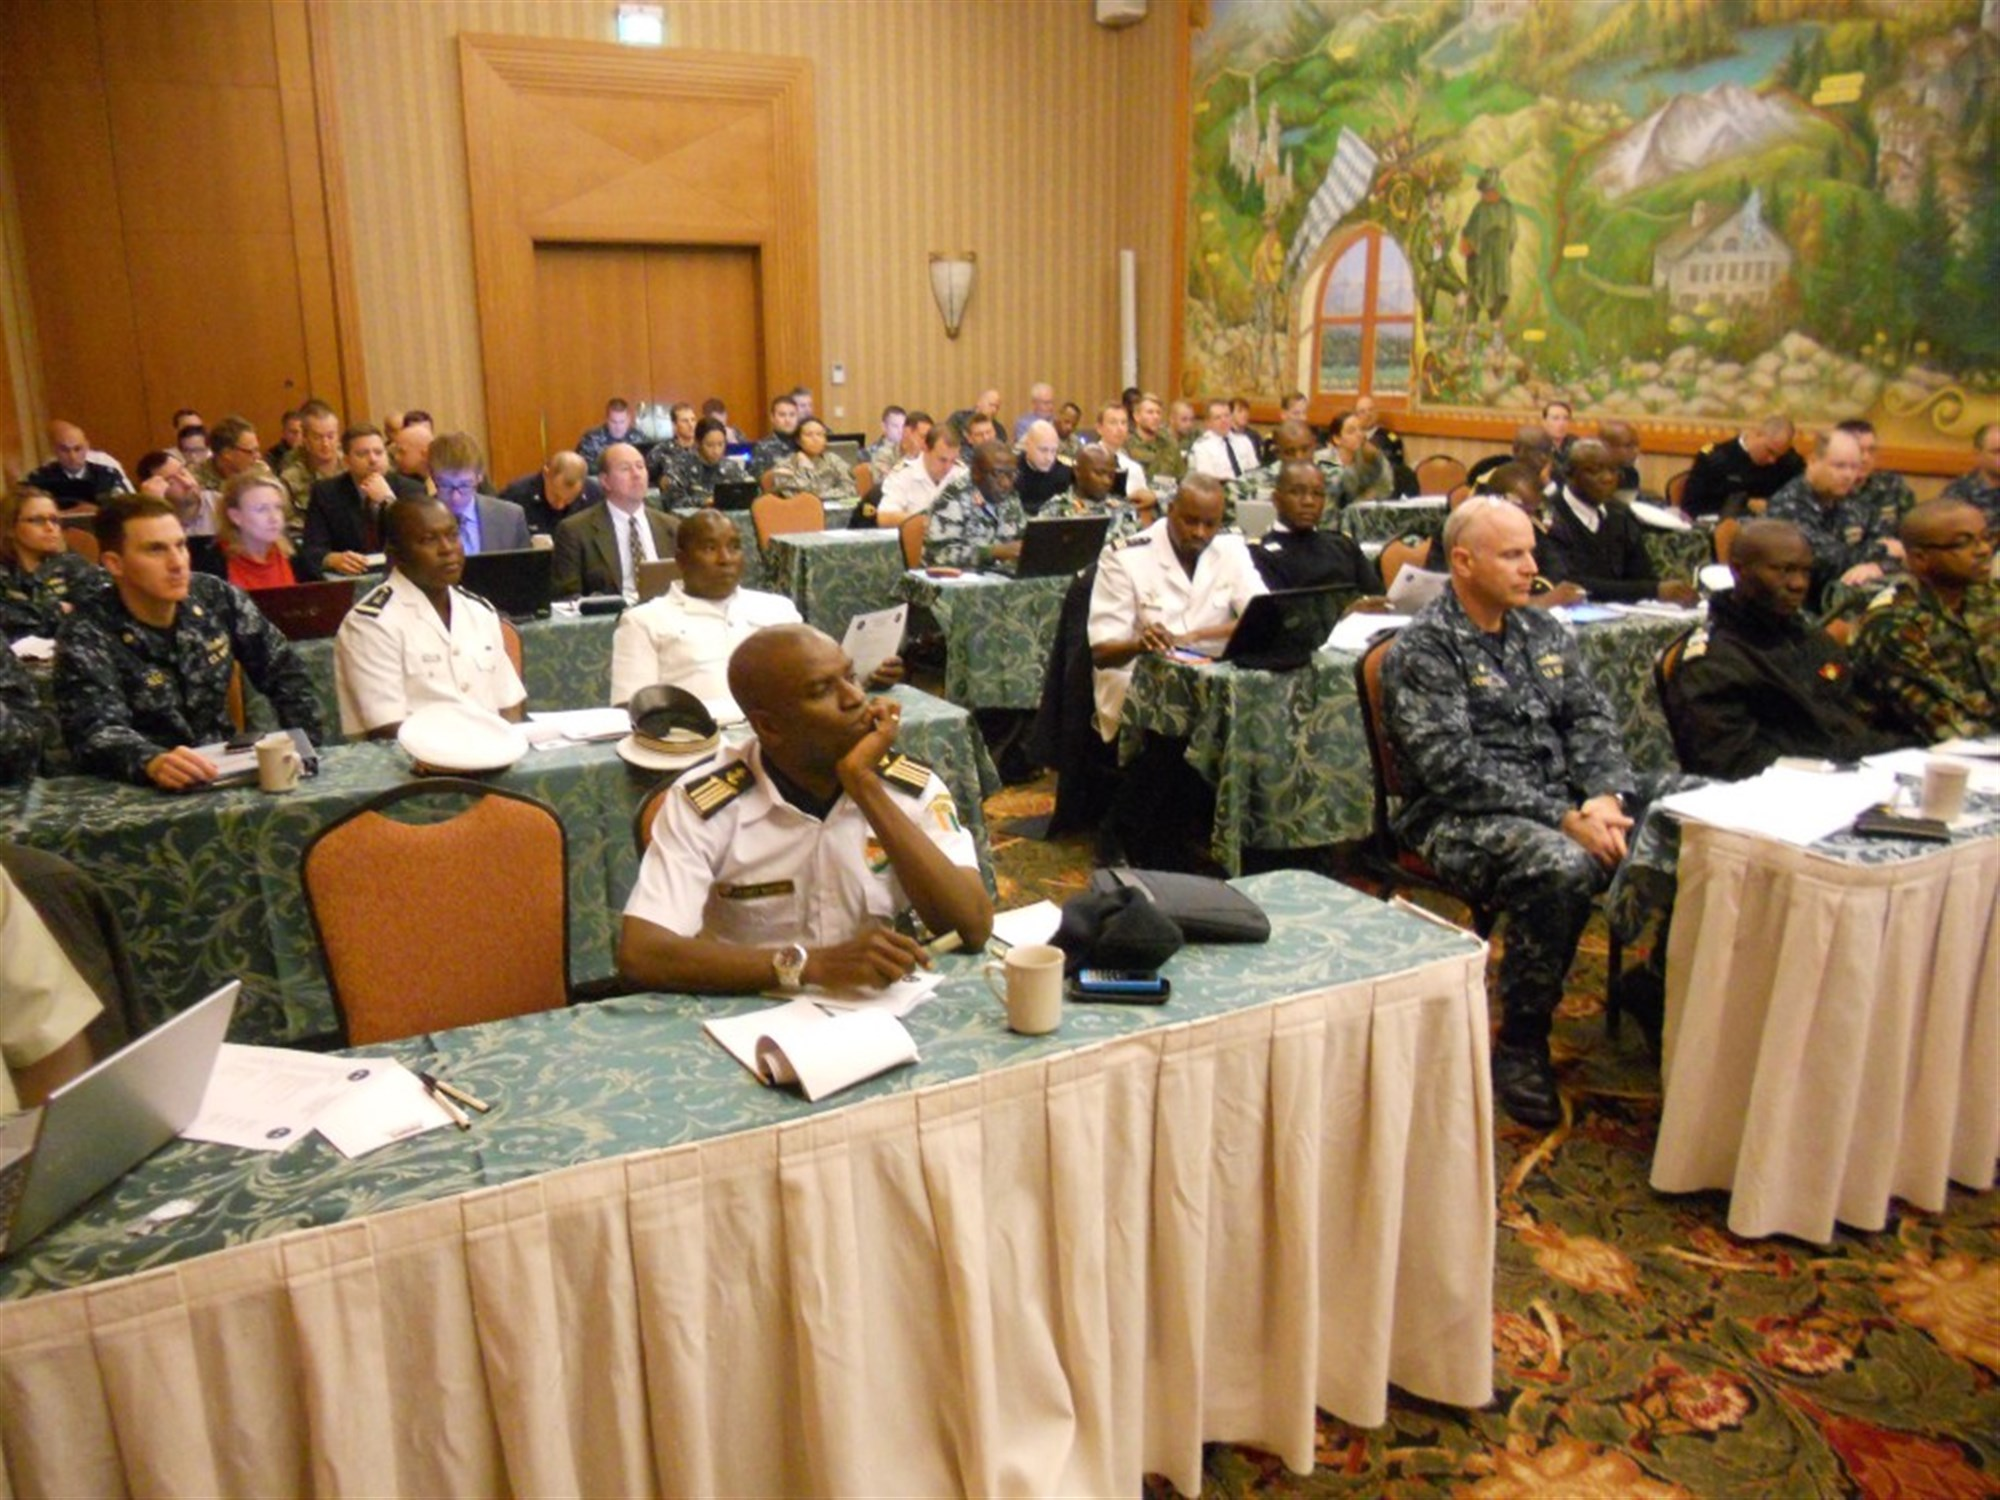 Planners from more than 20 African and European maritime nations attend a final planning conference in Garmisch-Partenkirchen, Germany, for Exercise Obangame Express Jan. 12, 2015. The exercise will take place in the Gulf of Guinea in March 2015, and will focus on developing regional maritime interoperability. (U.S. Navy photo by Lt. Cmdr. Kent Laborde/Released)